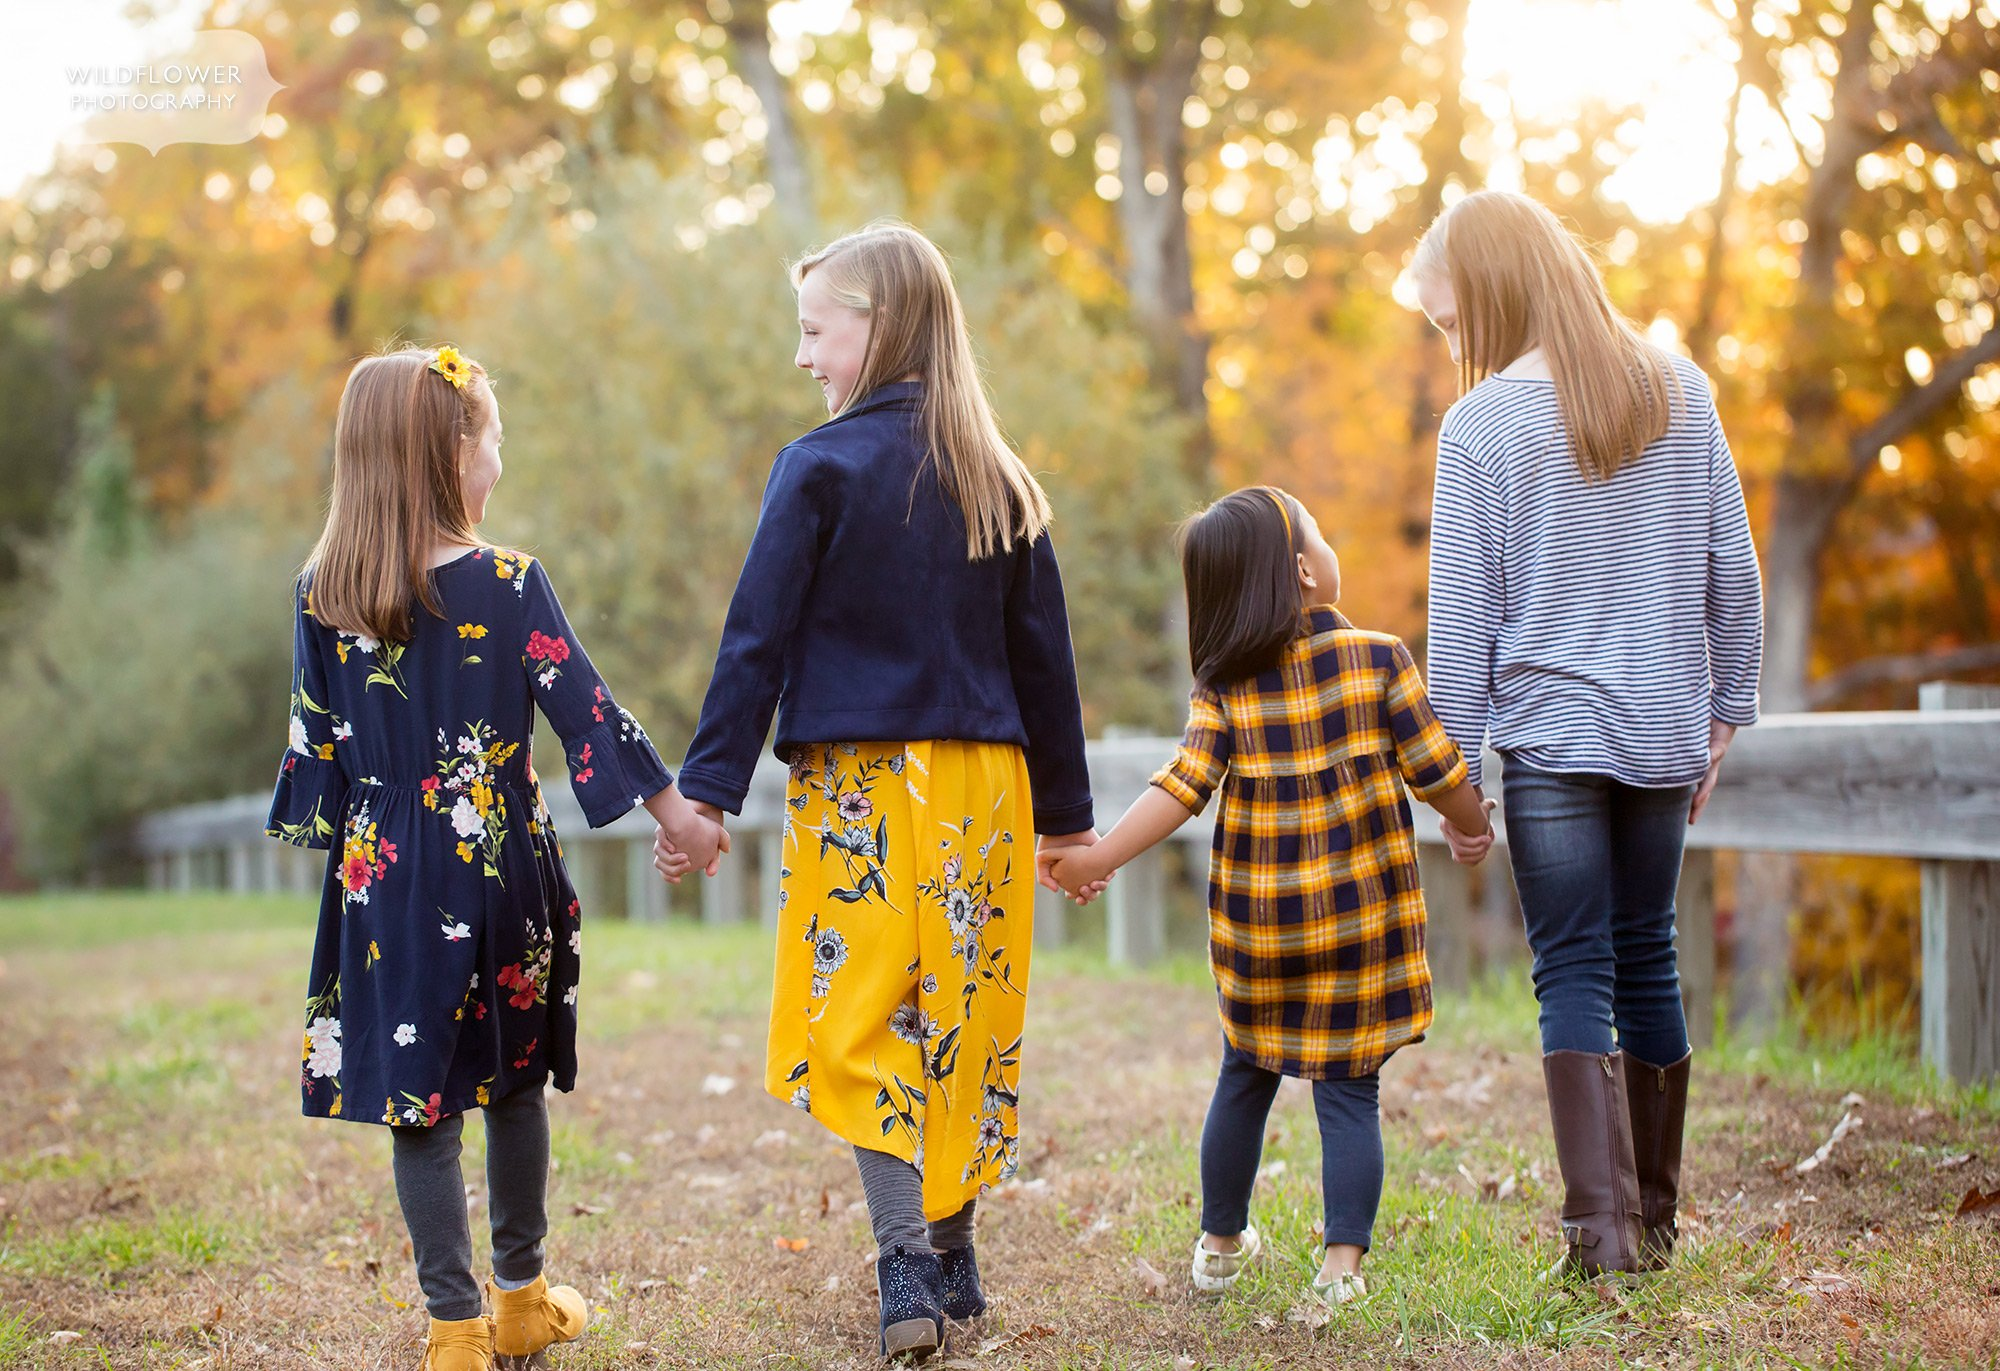 Sweet family photo at sunset in October of sisters holding hands and walking down path.